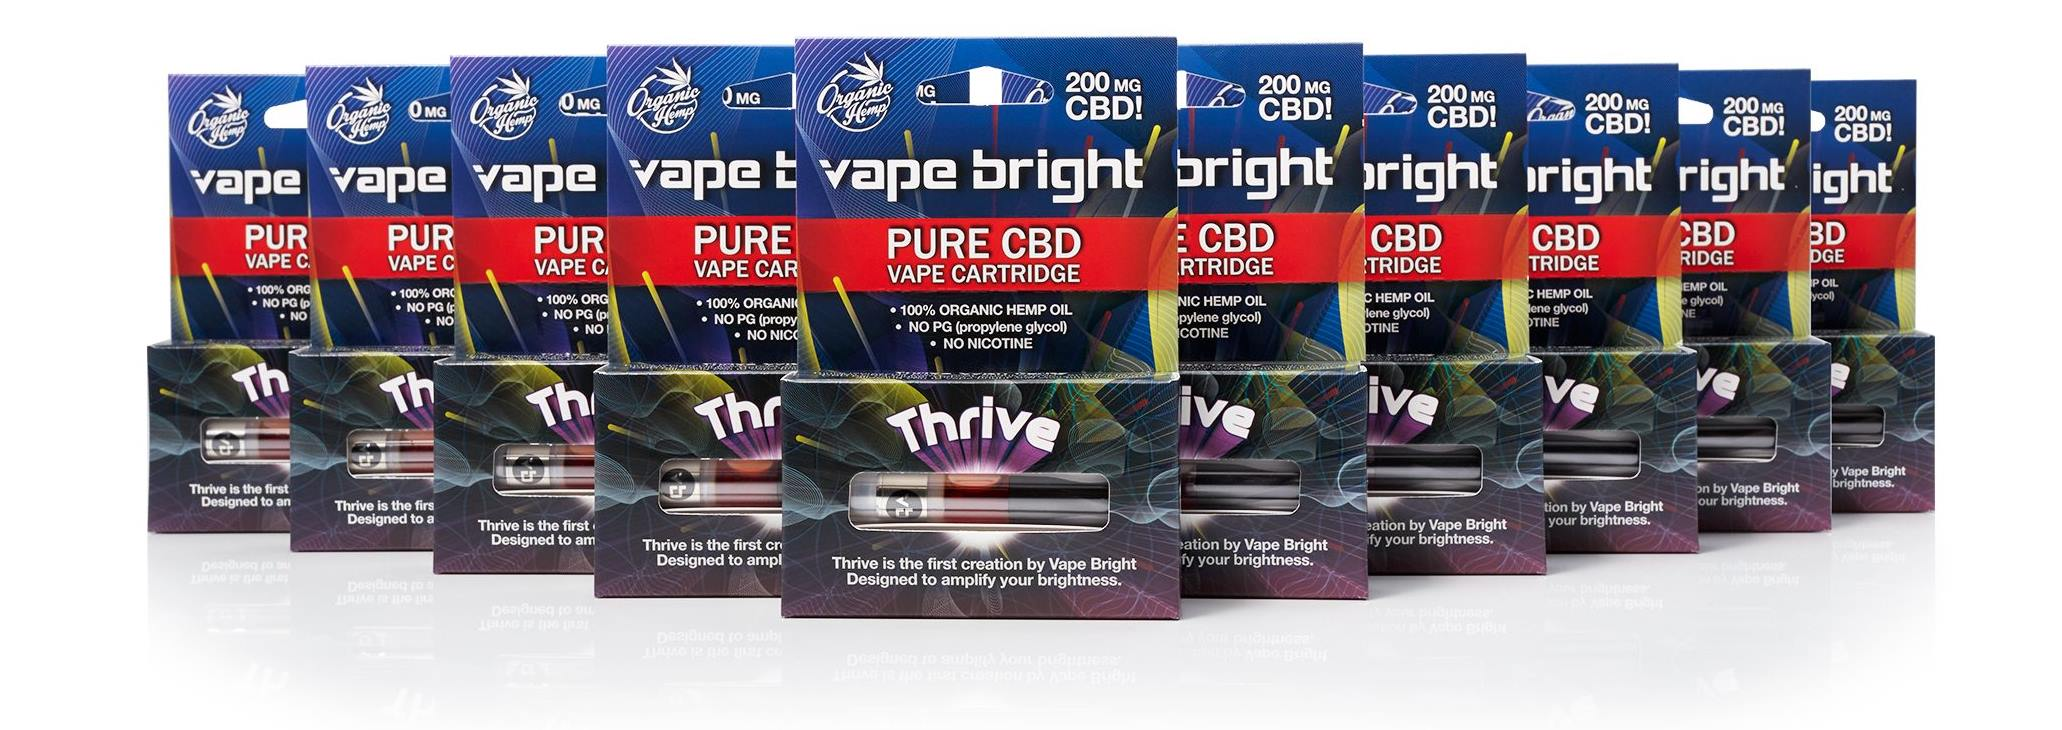 Vape Bright CBD Oil